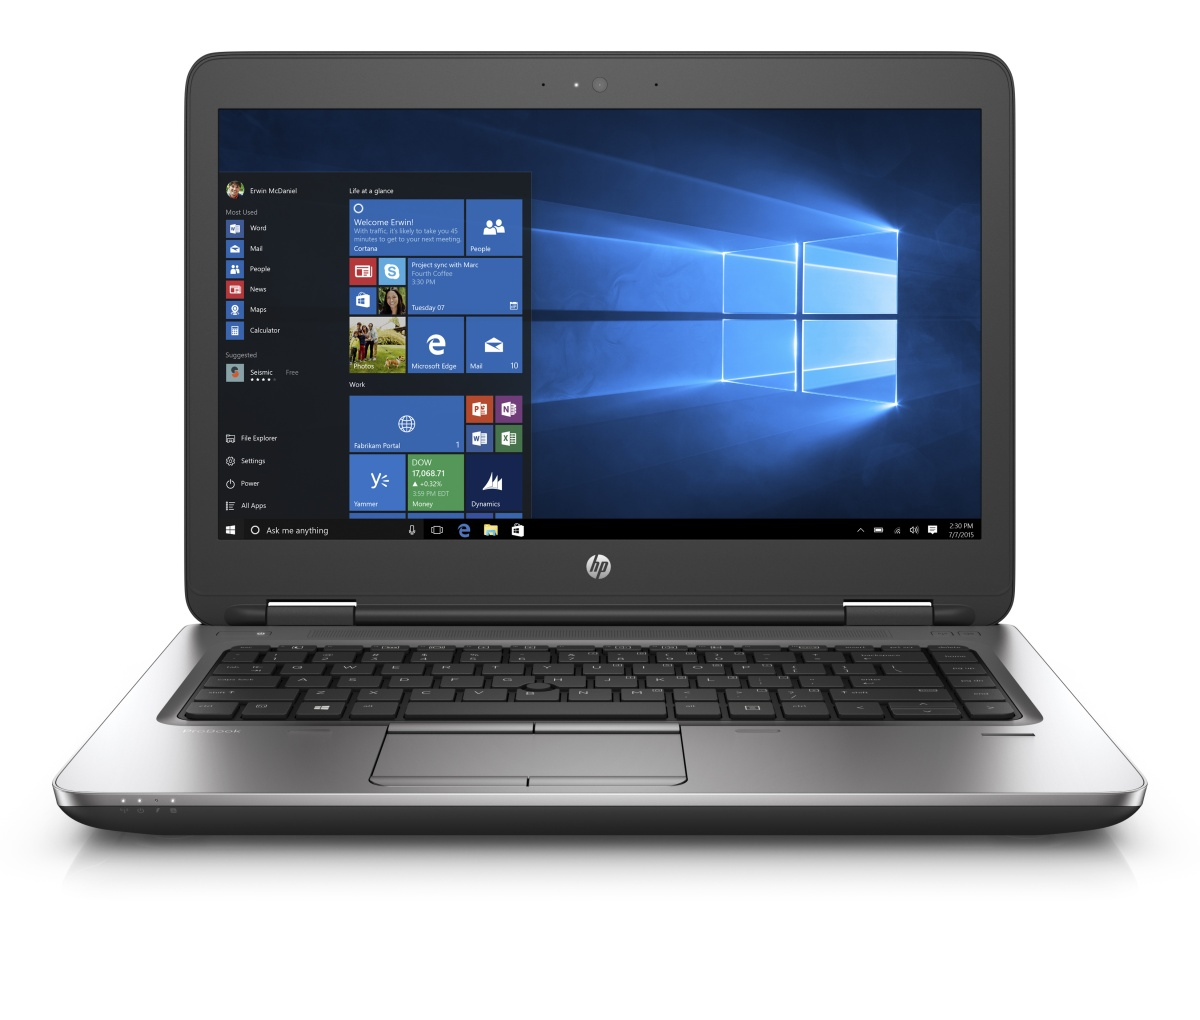 "HP ProBook 645 G2 - notebook/ AMD A10-8700B/ 14"" 1366x768/ 4GB RAM/ 500GB HDD/ AMD Radeon R6/ Win 7"